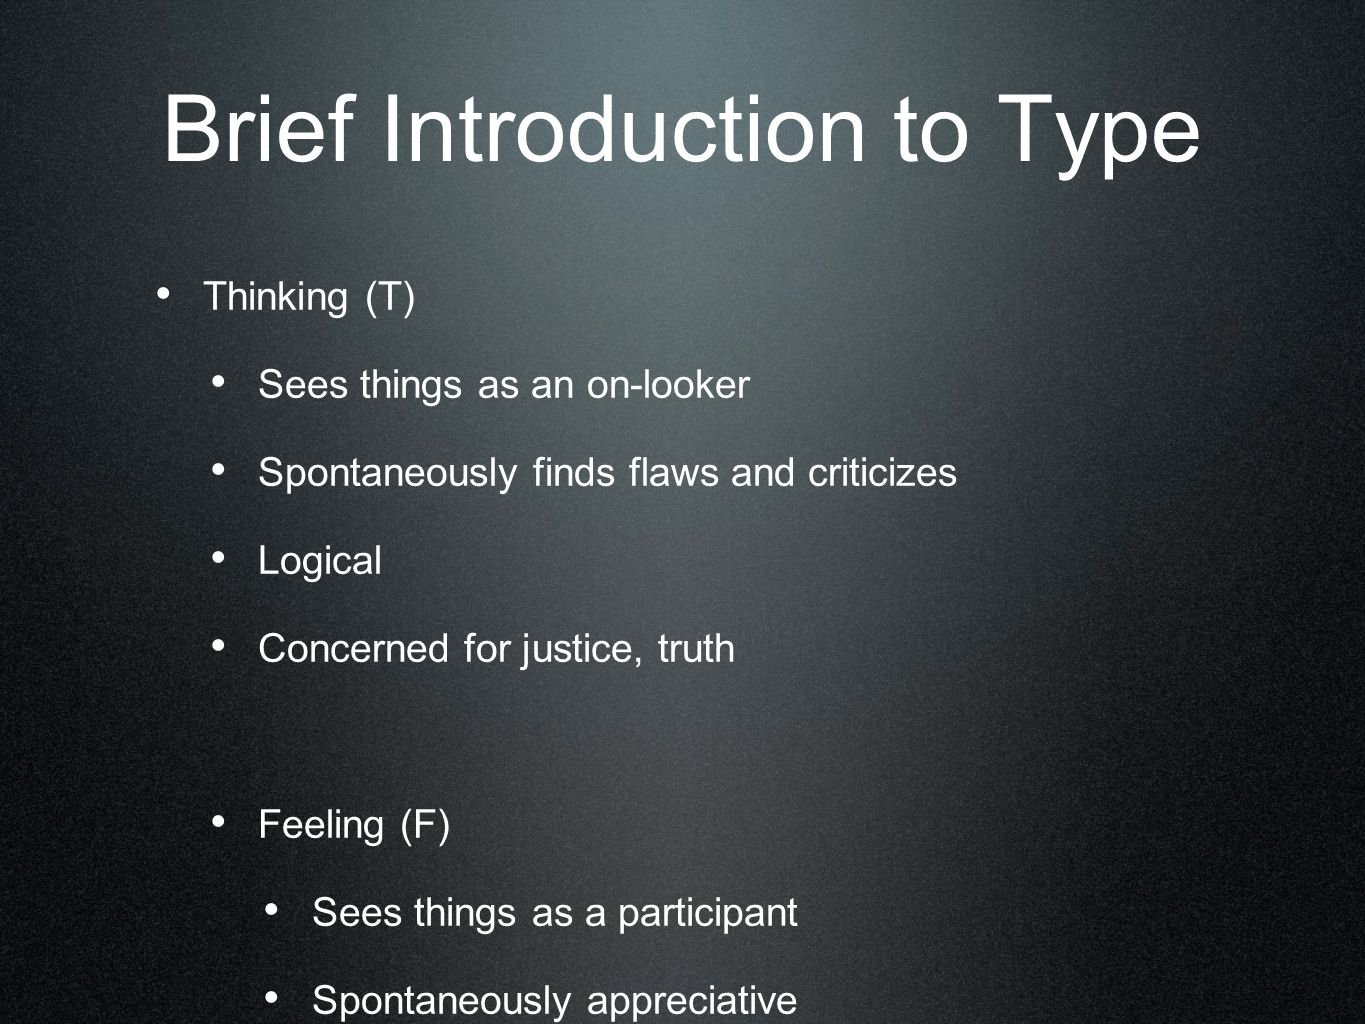 Brief Introduction to Type Thinking (T) Sees things as an on-looker Spontaneously finds flaws and criticizes Logical Concerned for justice, truth Feeling (F) Sees things as a participant Spontaneously appreciative Decides with the heart Concerned for relationships, harmony